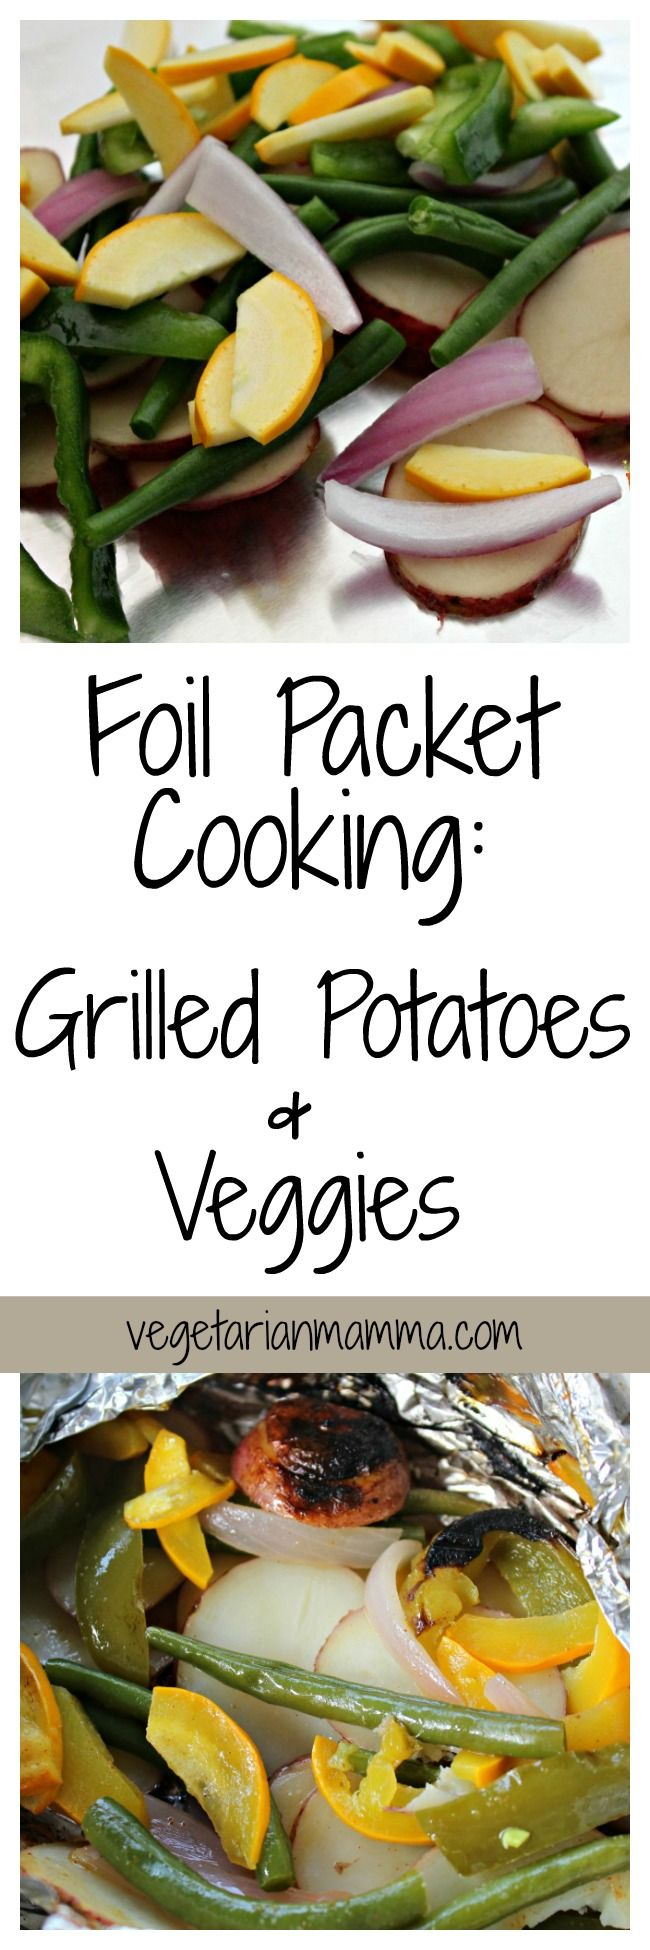 Gluten Free Foil Packet Cooking - Grilled Potatoes and Vegetables  @Vegetarianmamma.com